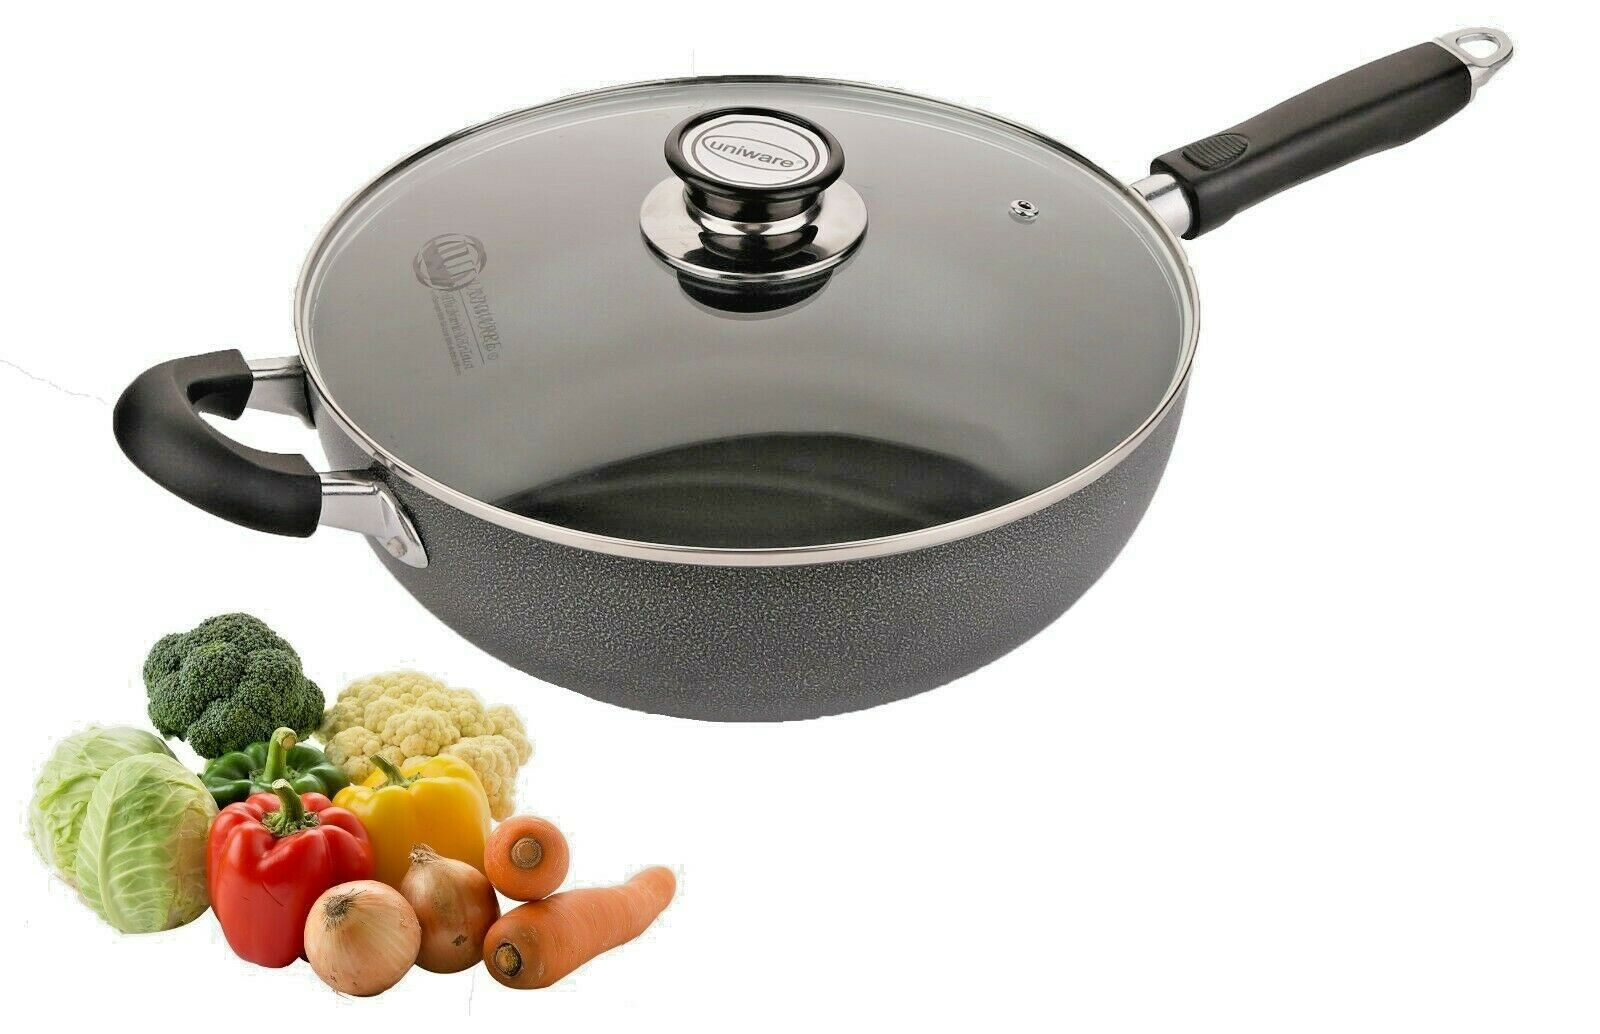 Non Stick Wok Pan With Vented Glass Lid 5.5 Quarts, Black